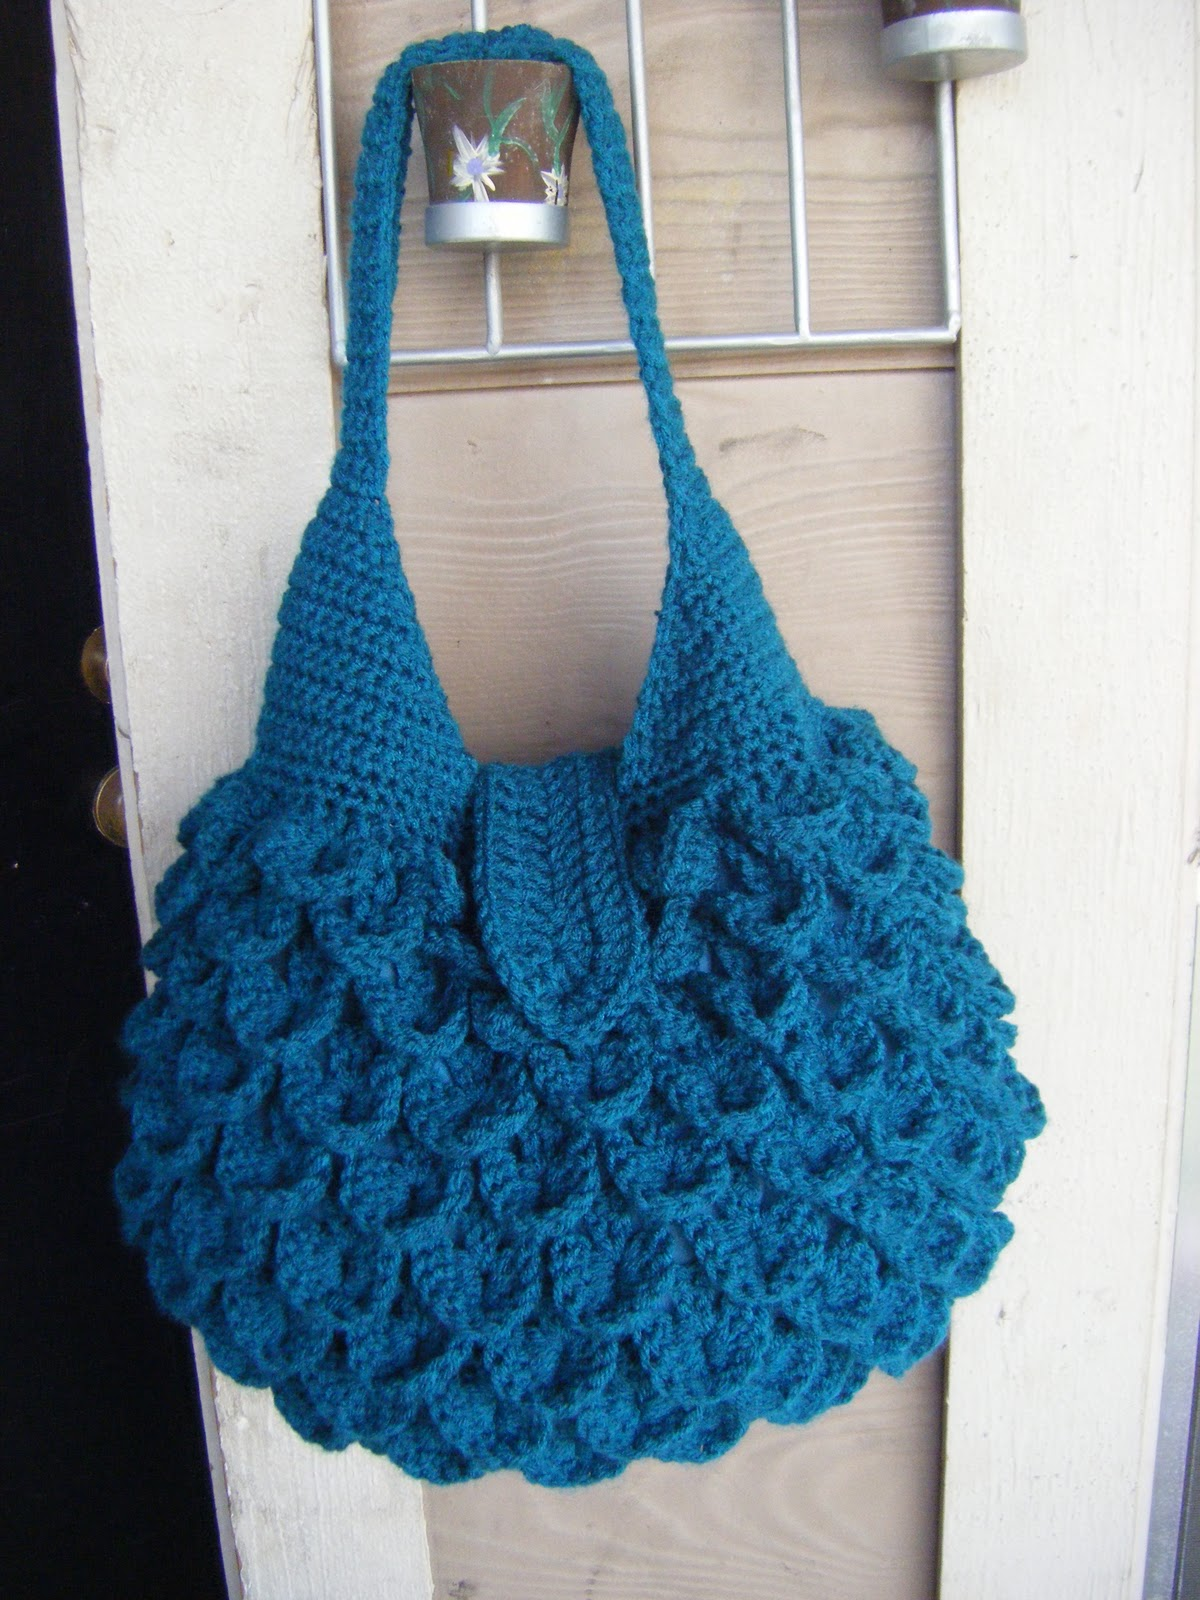 Crochet Purse Ideas : Best Patterns: Crocodile Crochet Bag PATTERN